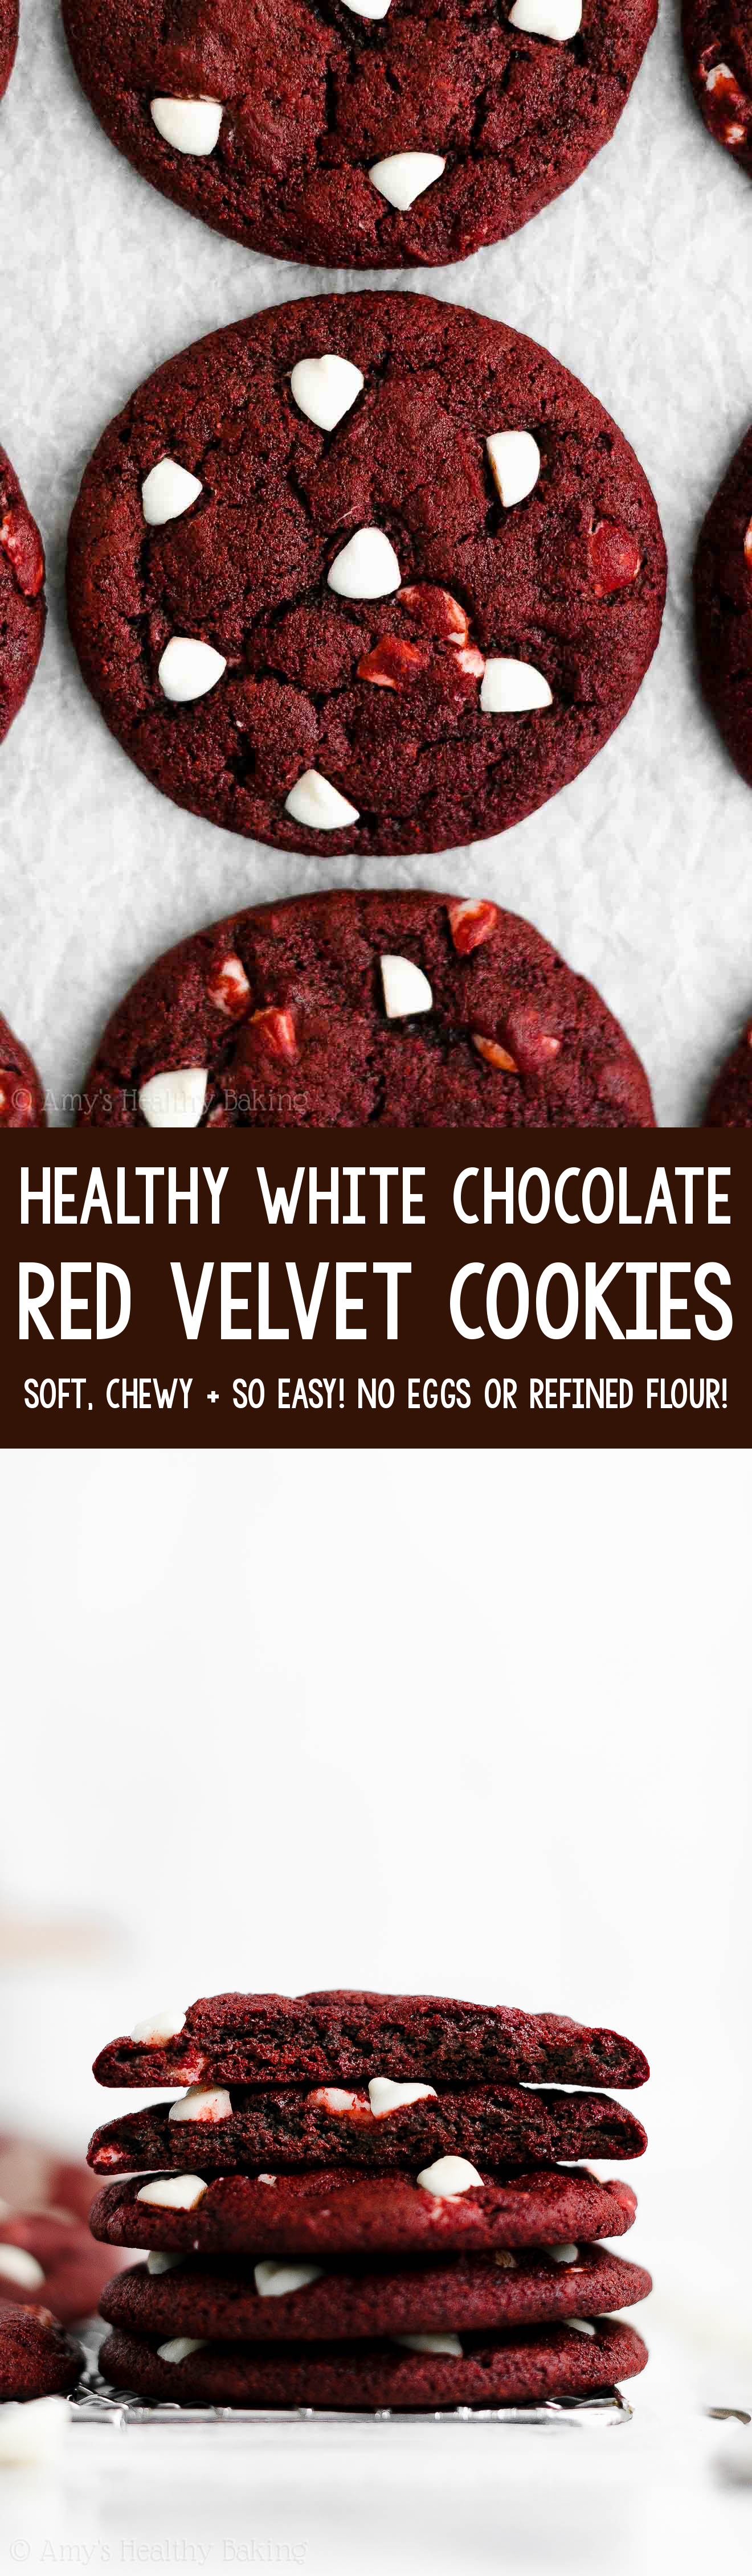 Easy Healthy Homemade Soft Chewy White Chocolate Red Velvet Cookies From Scratch